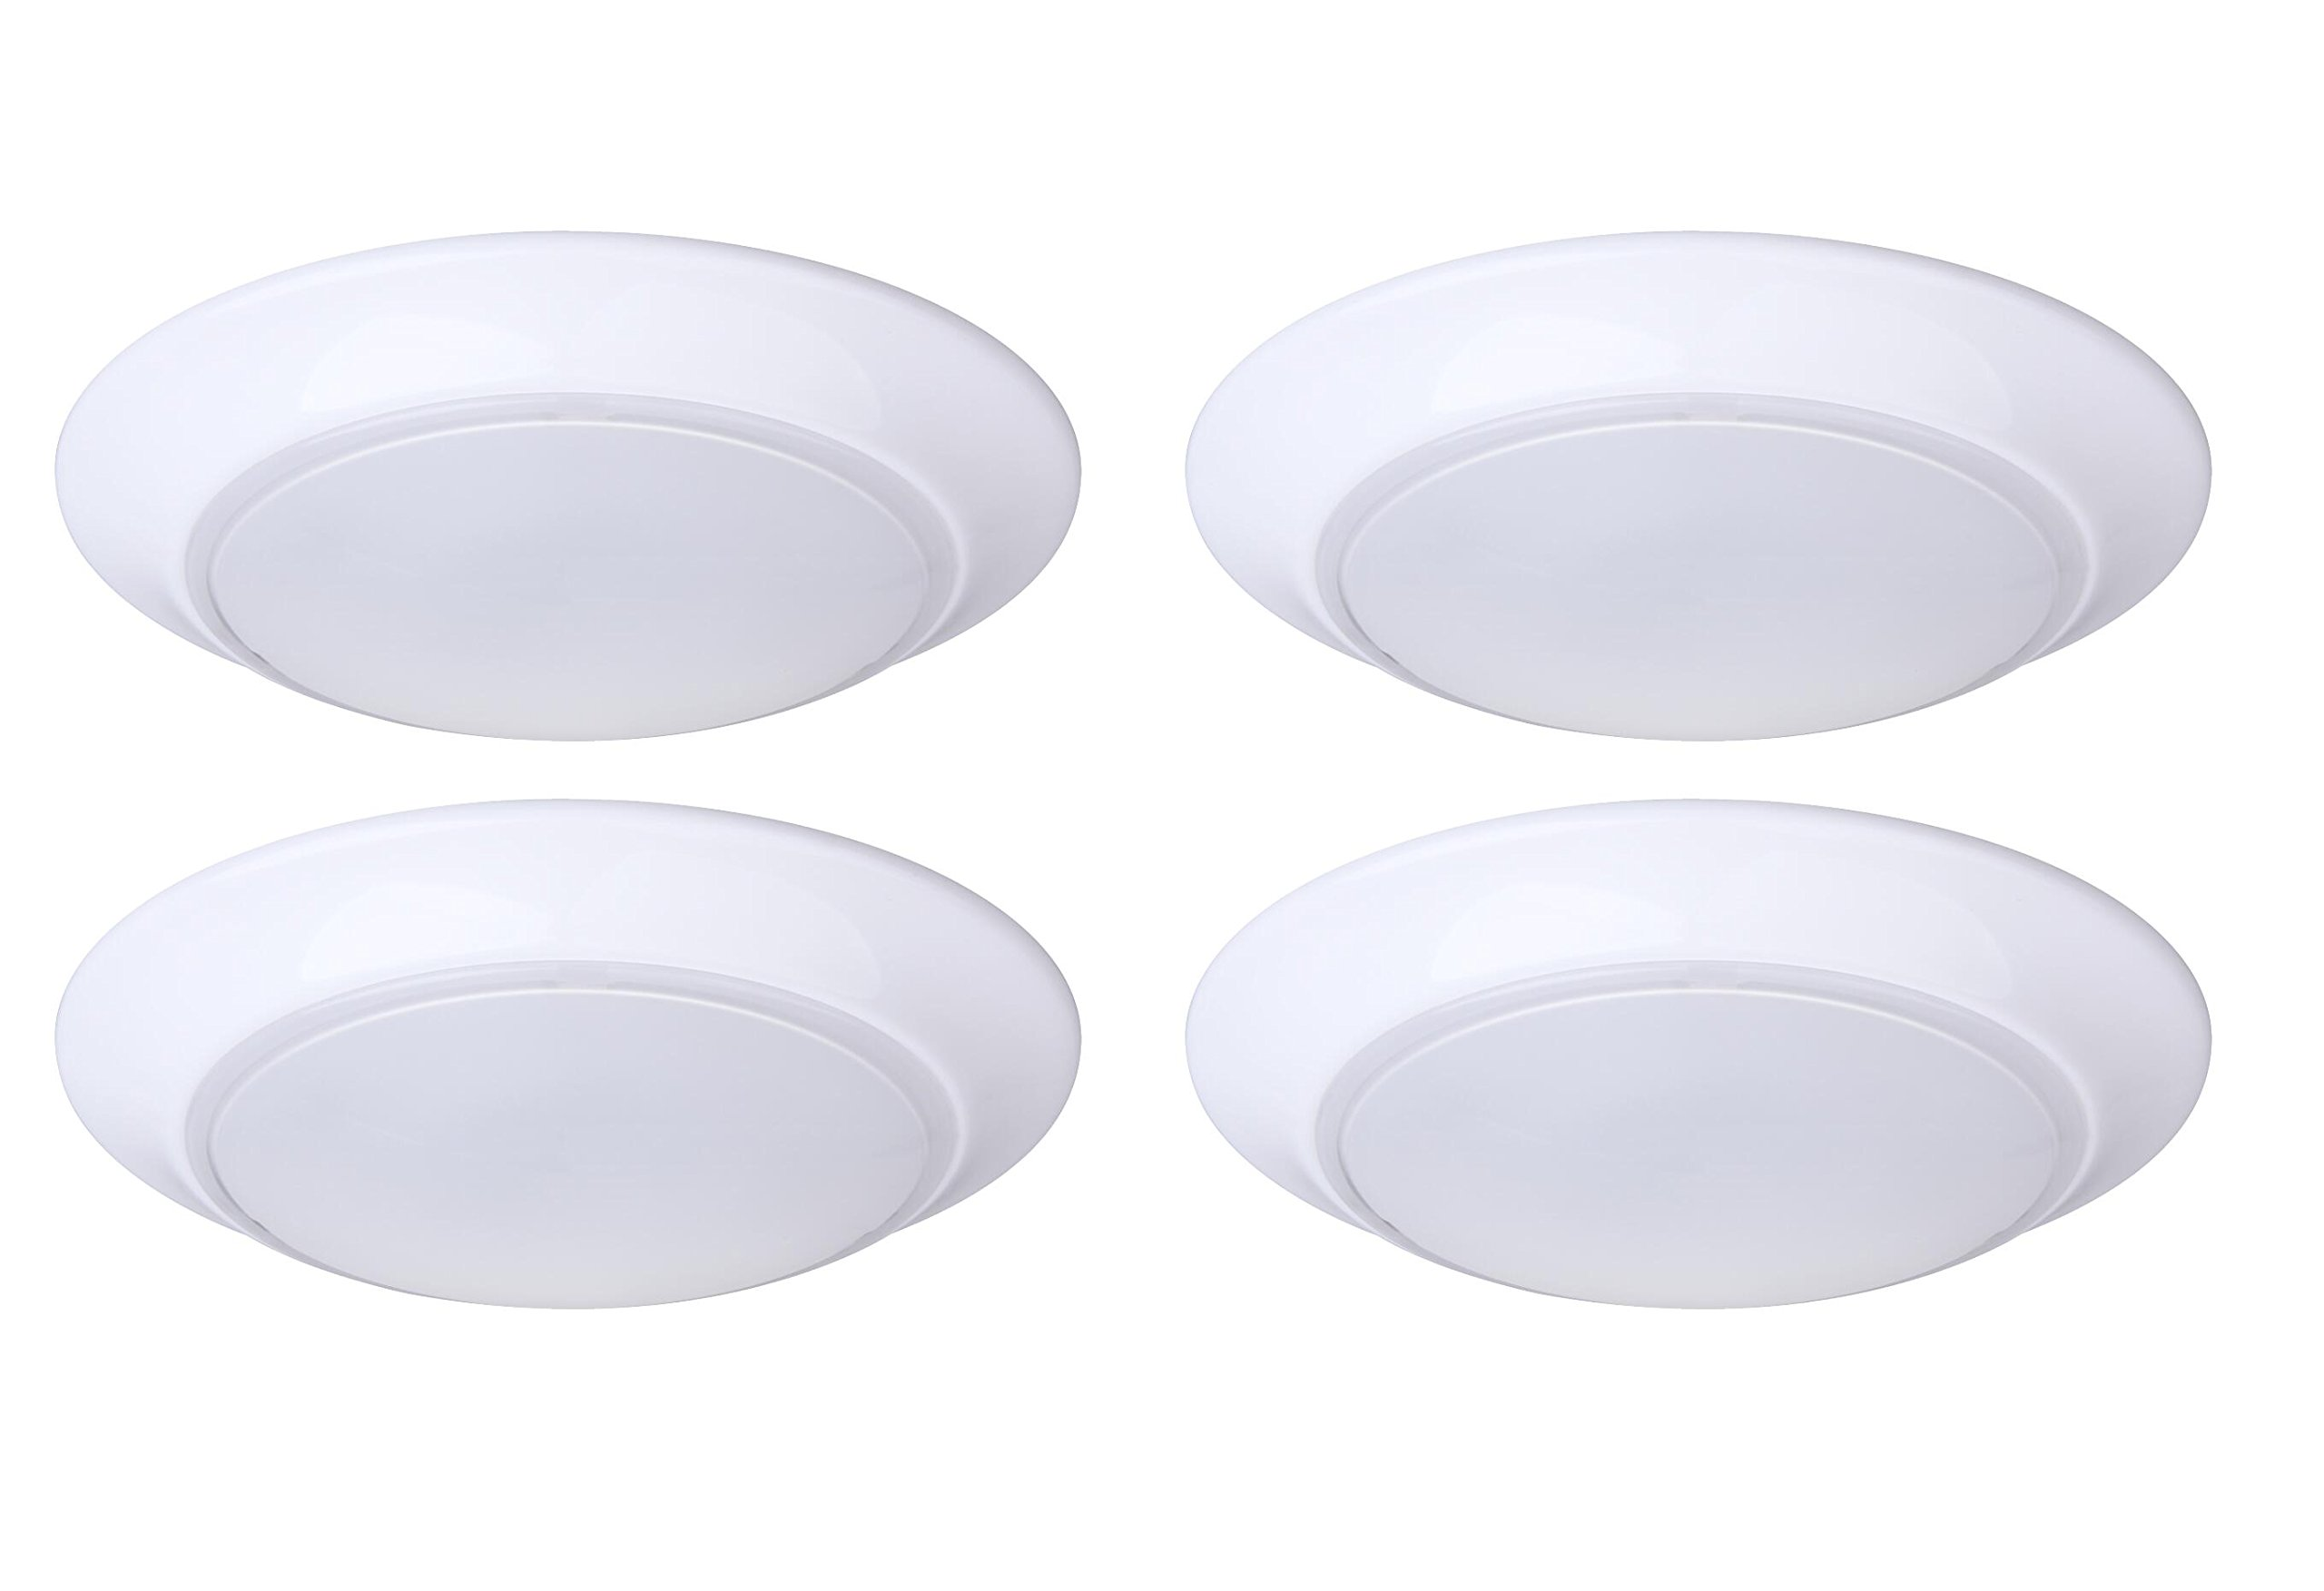 Lit-Path 7.5 inch LED Flush Mount Ceiling Lighting Fixture, 11.5W (75W Equivalent), Dimmable, 800 Lumen, ETL and ES Qualified, 4-Pack